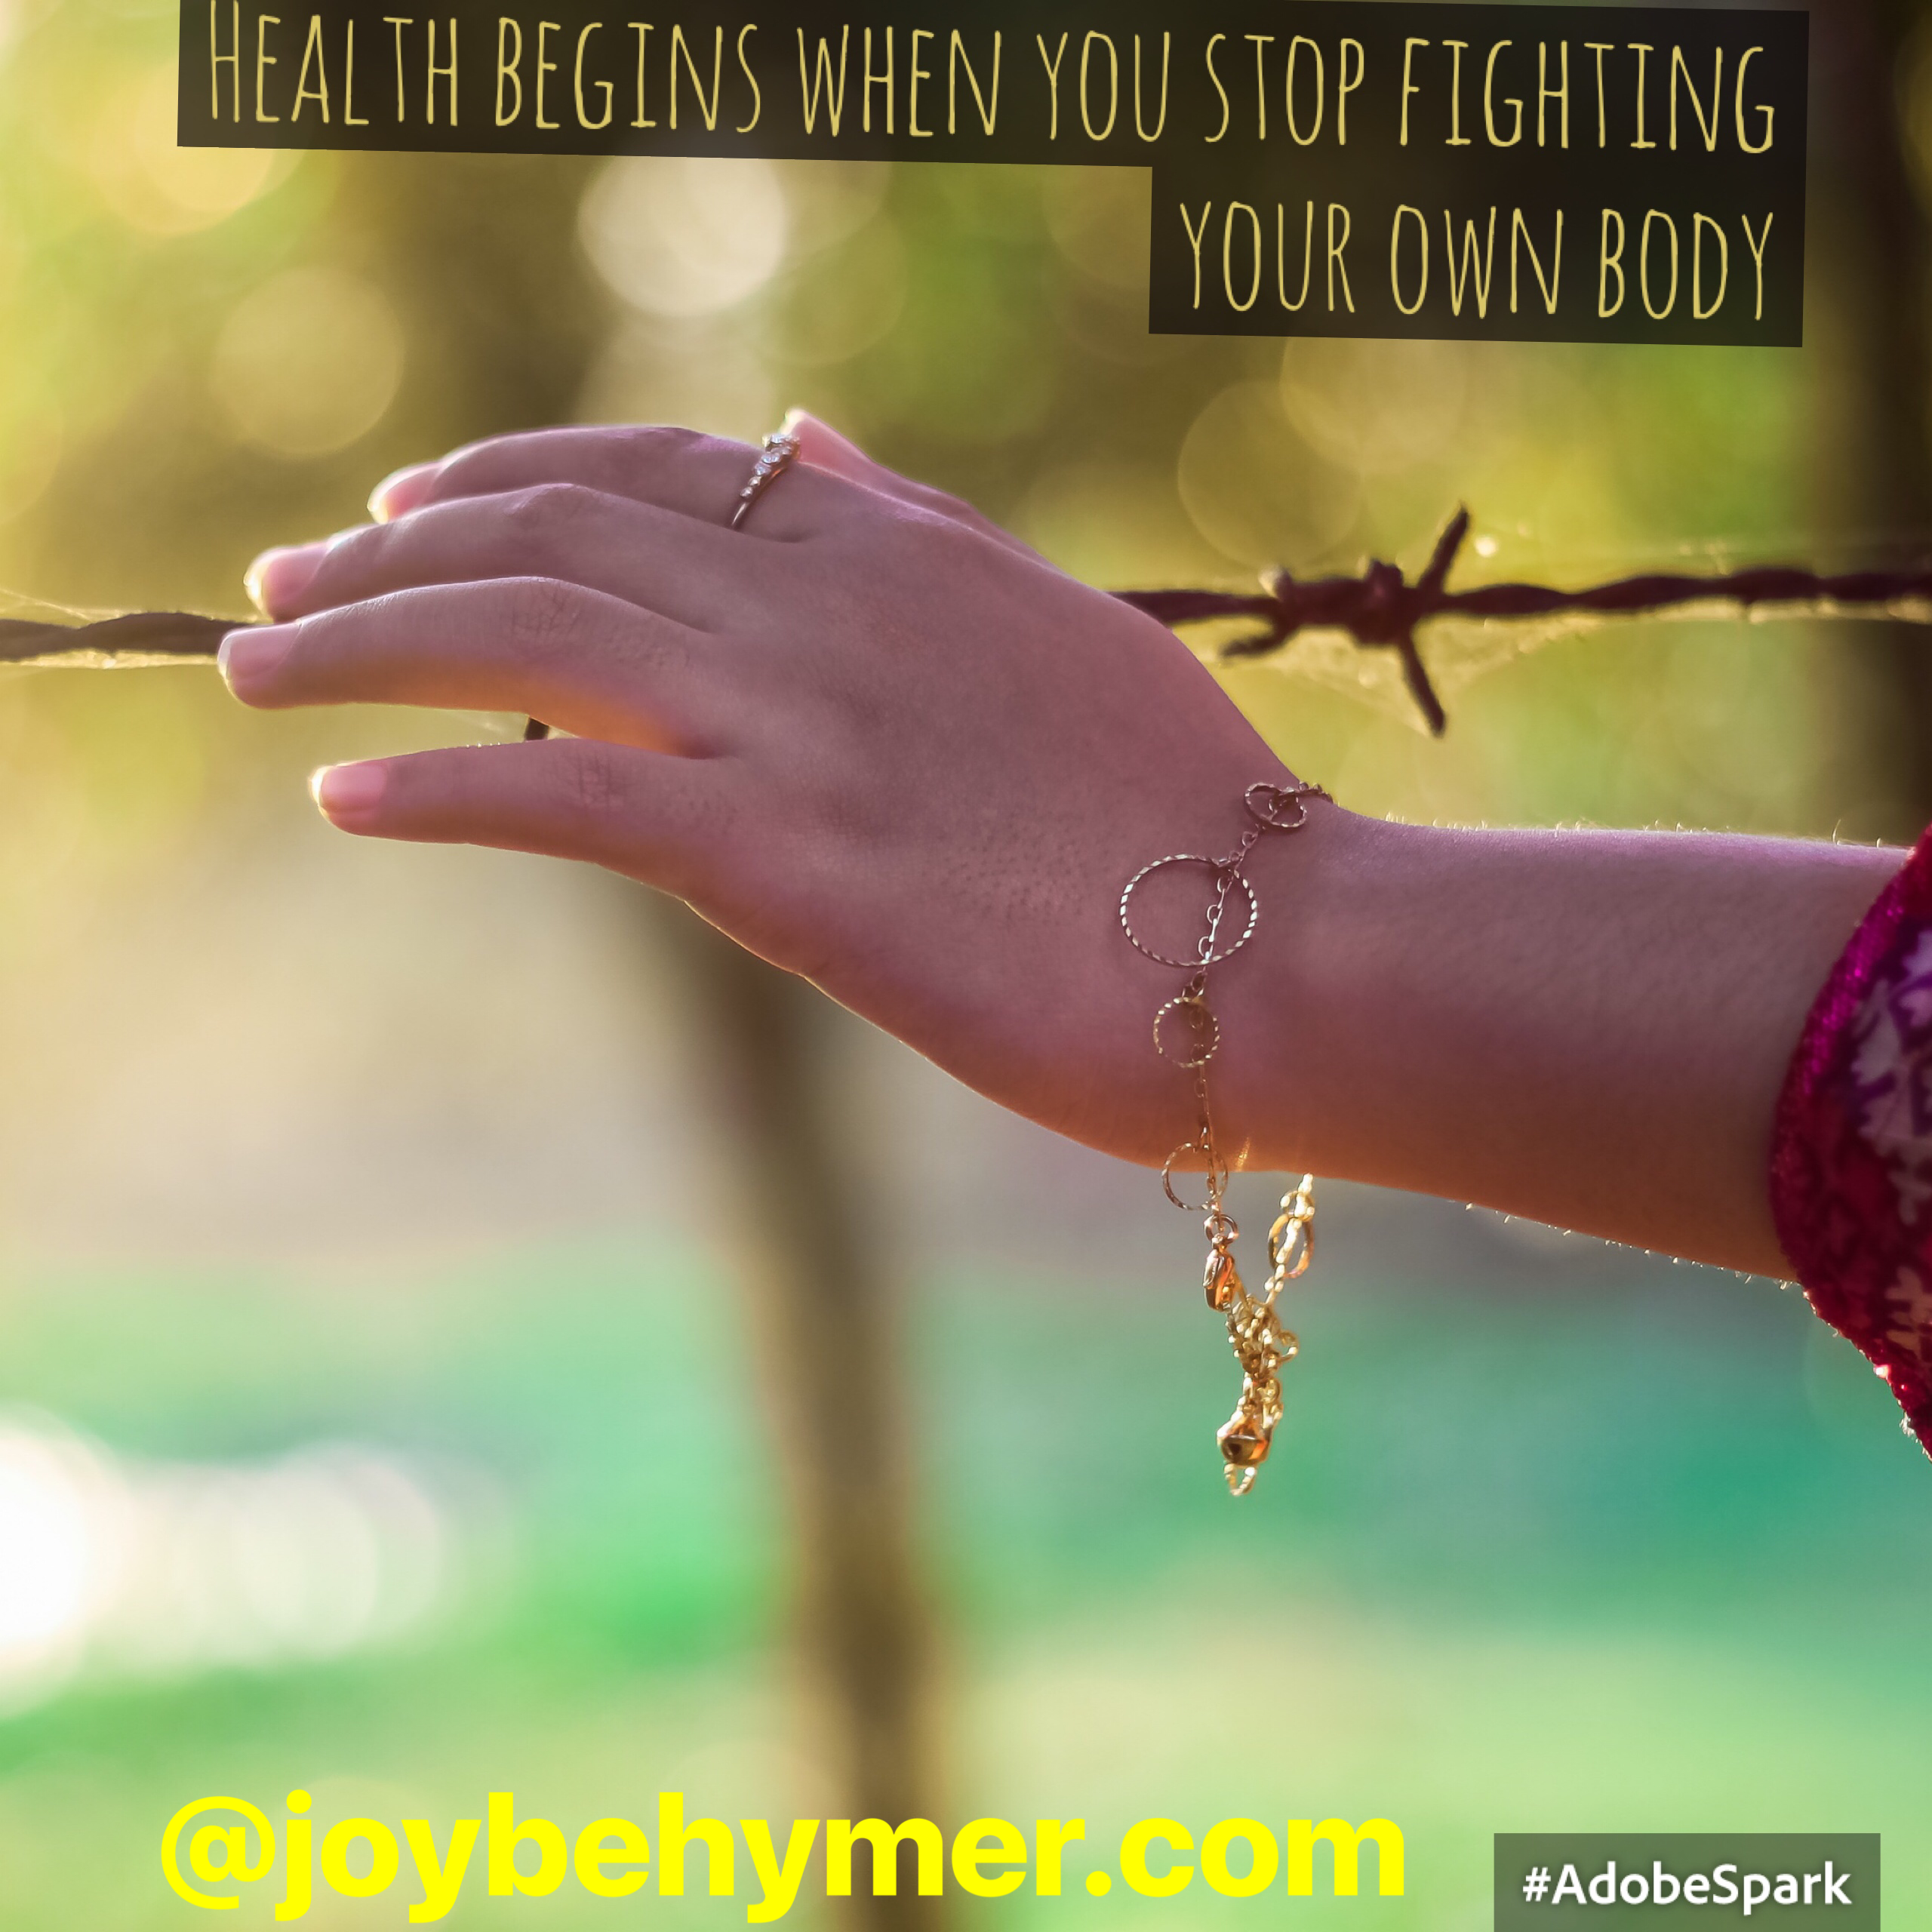 Health begins when you stop fighting your own body